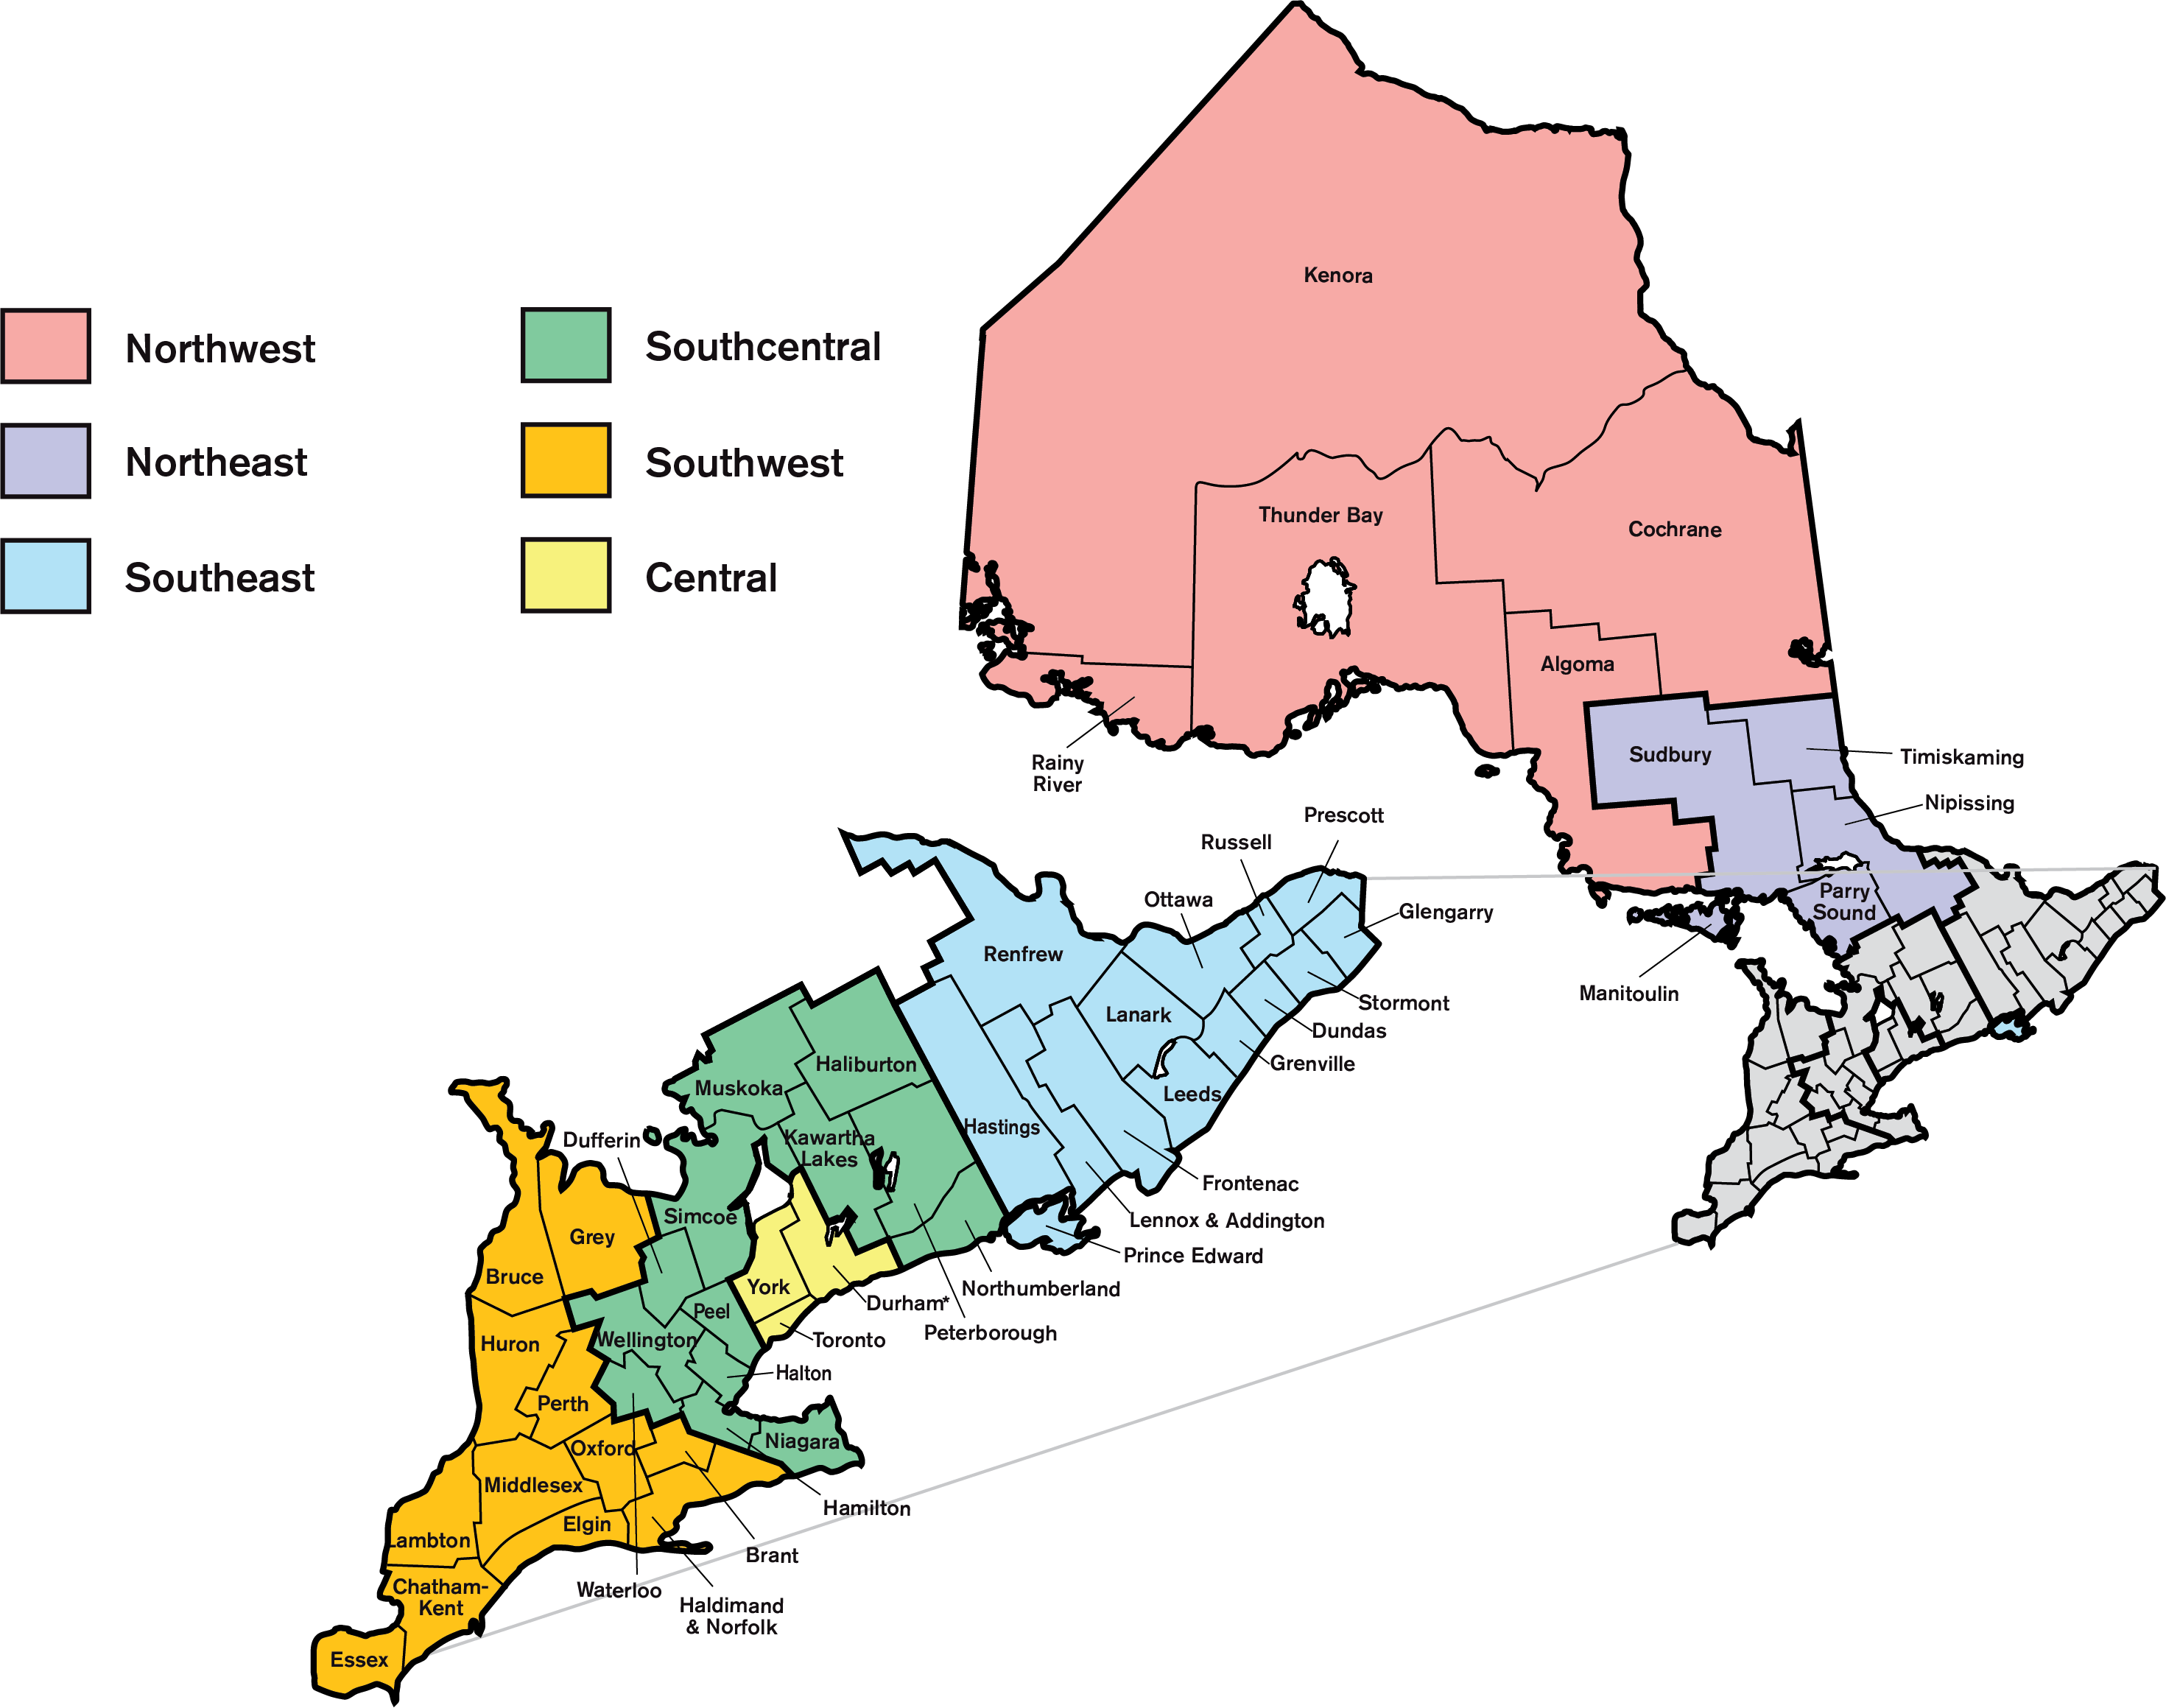 A map outlining the various electoral regions for the Ontario College of Teachers 23 elected Council positions